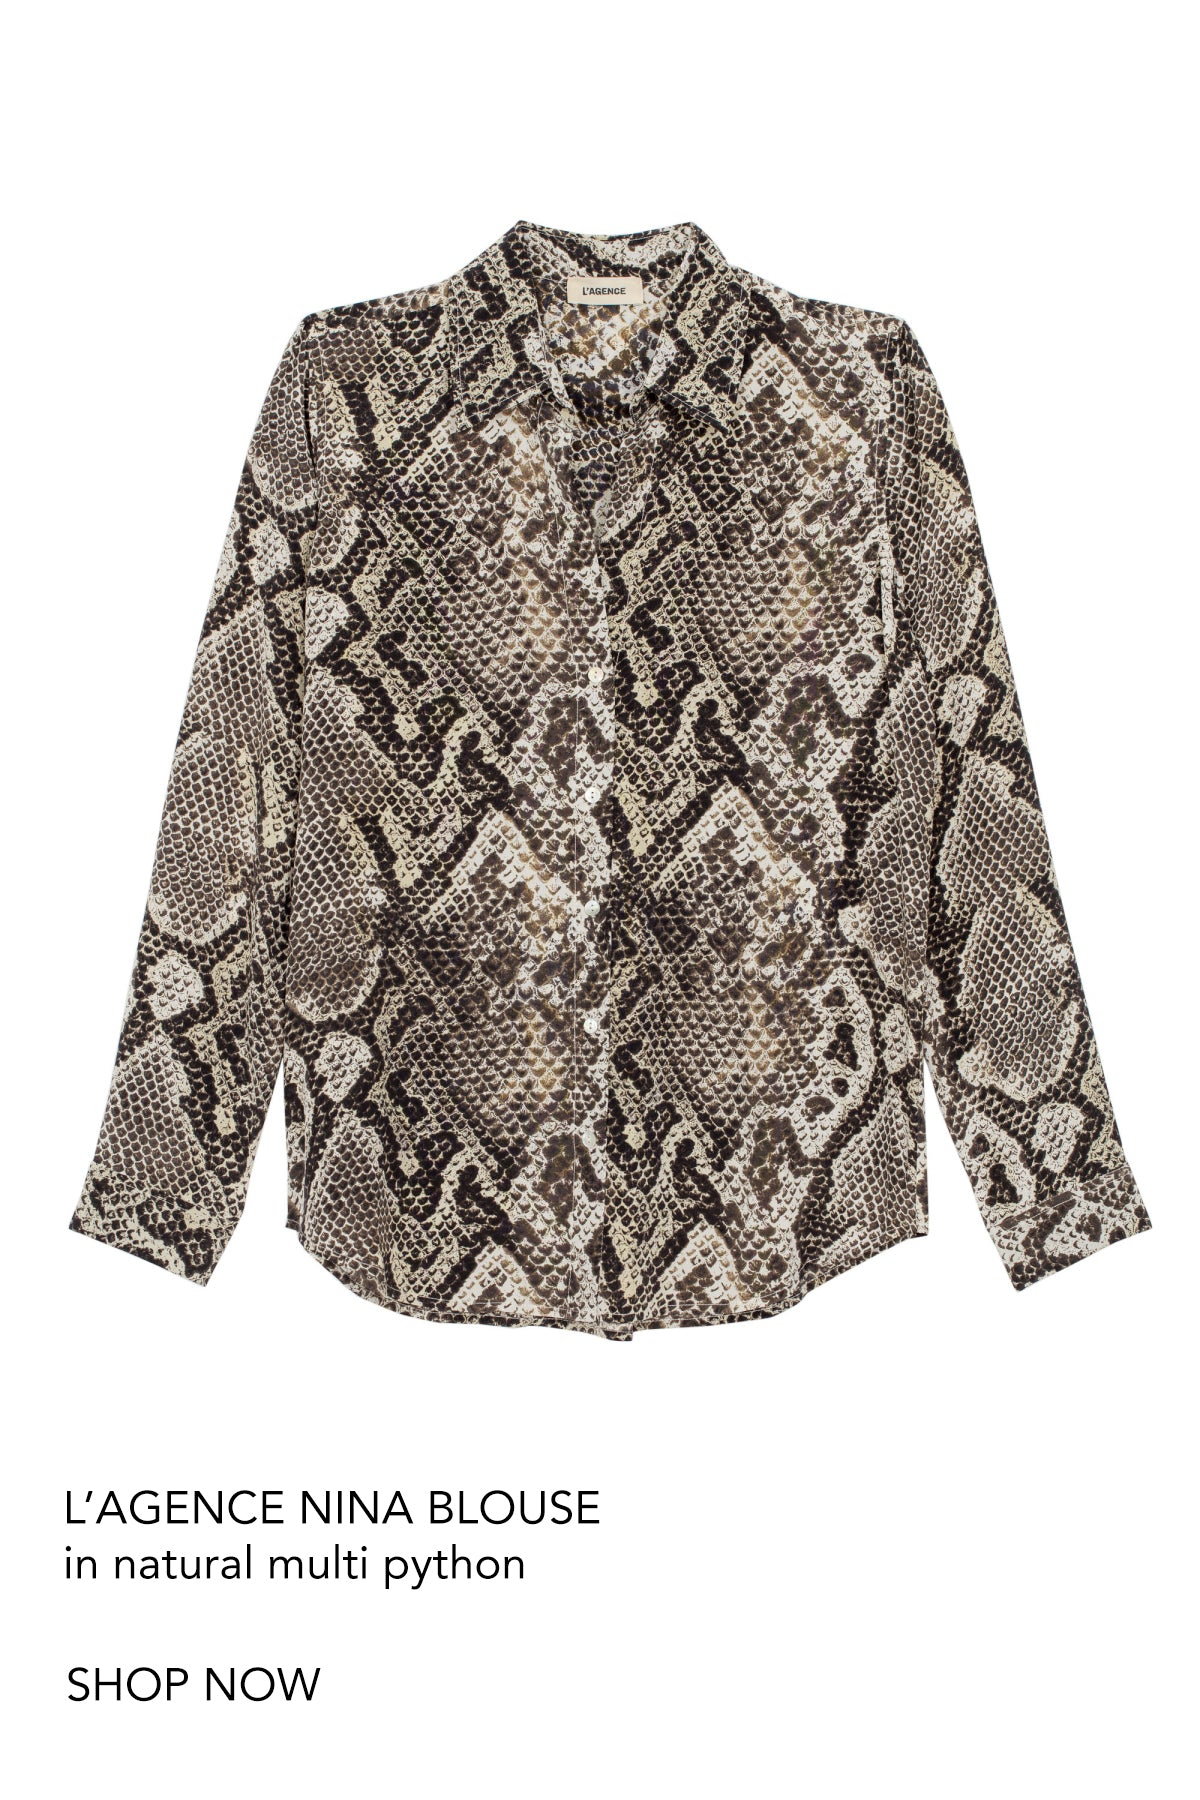 L'agence nina blouse python silk cottesloe perth australia fashion iridescent sea beach house